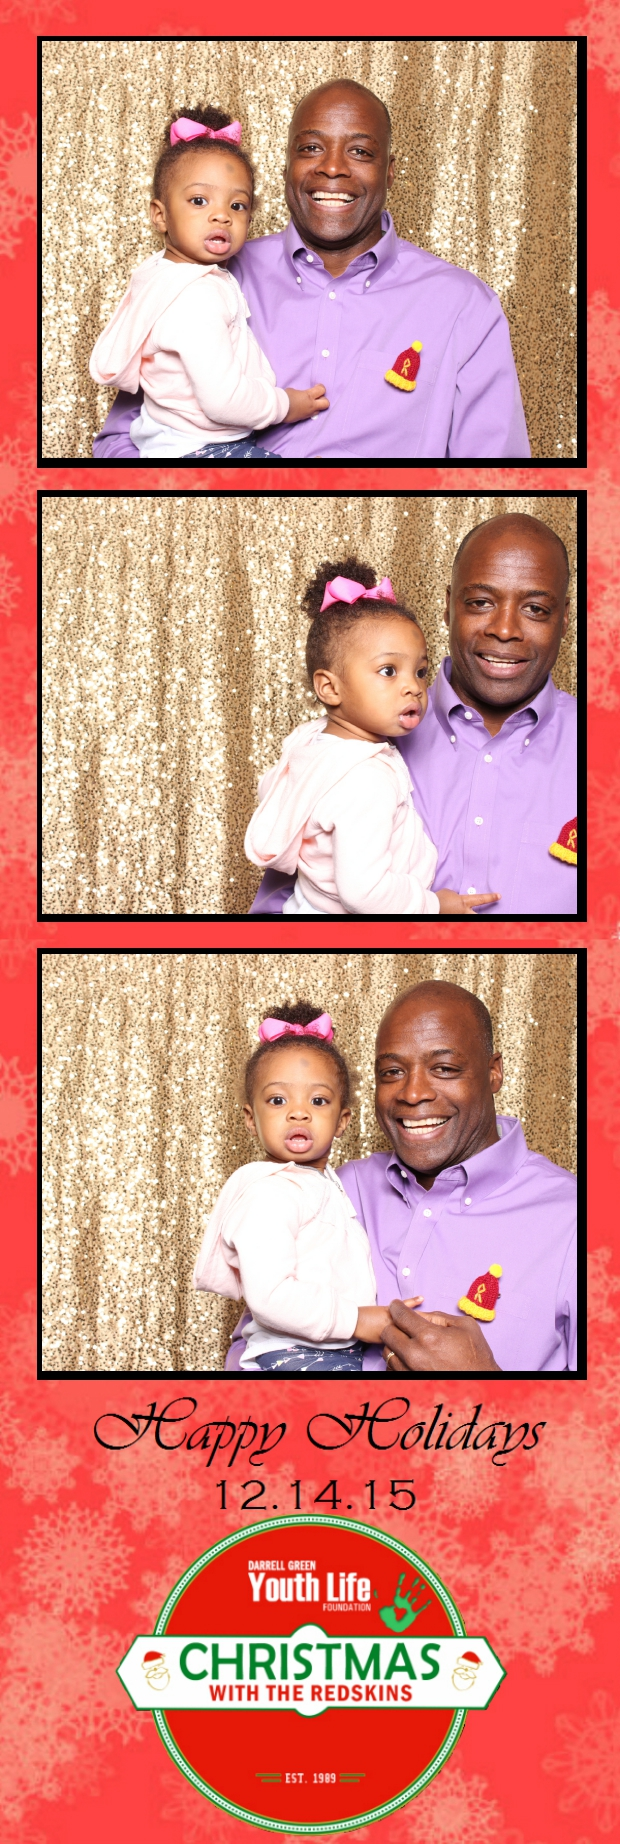 Guest House Events Photo Booth DGYLF Strips (70).jpg